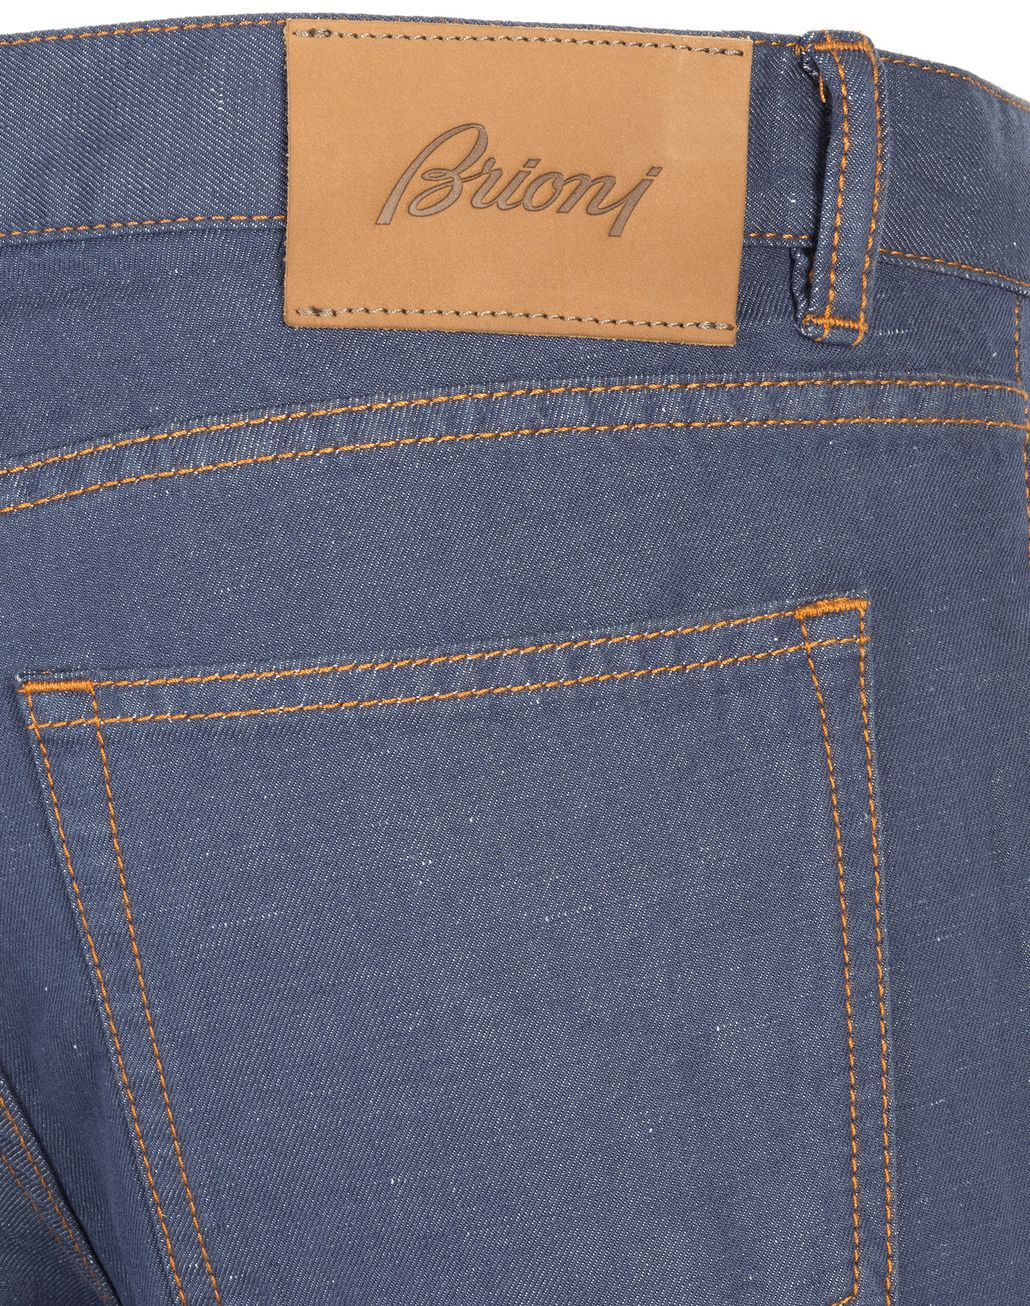 BRIONI Bluette Slim Fit Cotton and Linen Aneto Jeans  Denim Man a